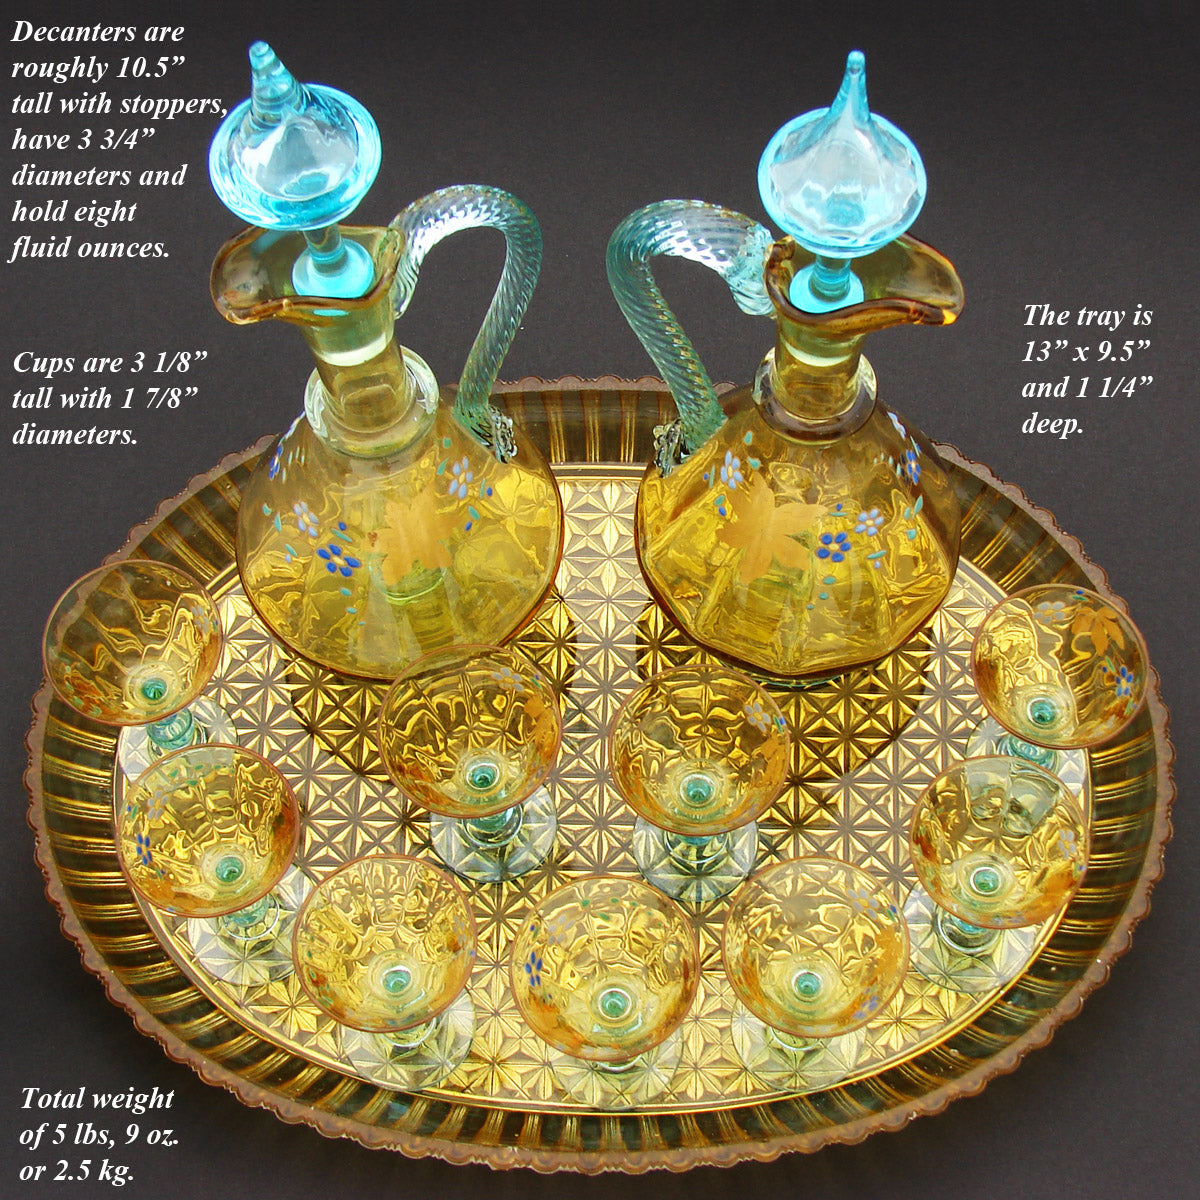 Antique French Liqueur Aperitif Decanter PAIR, Cordial Stems & Tray, Likely George Sand